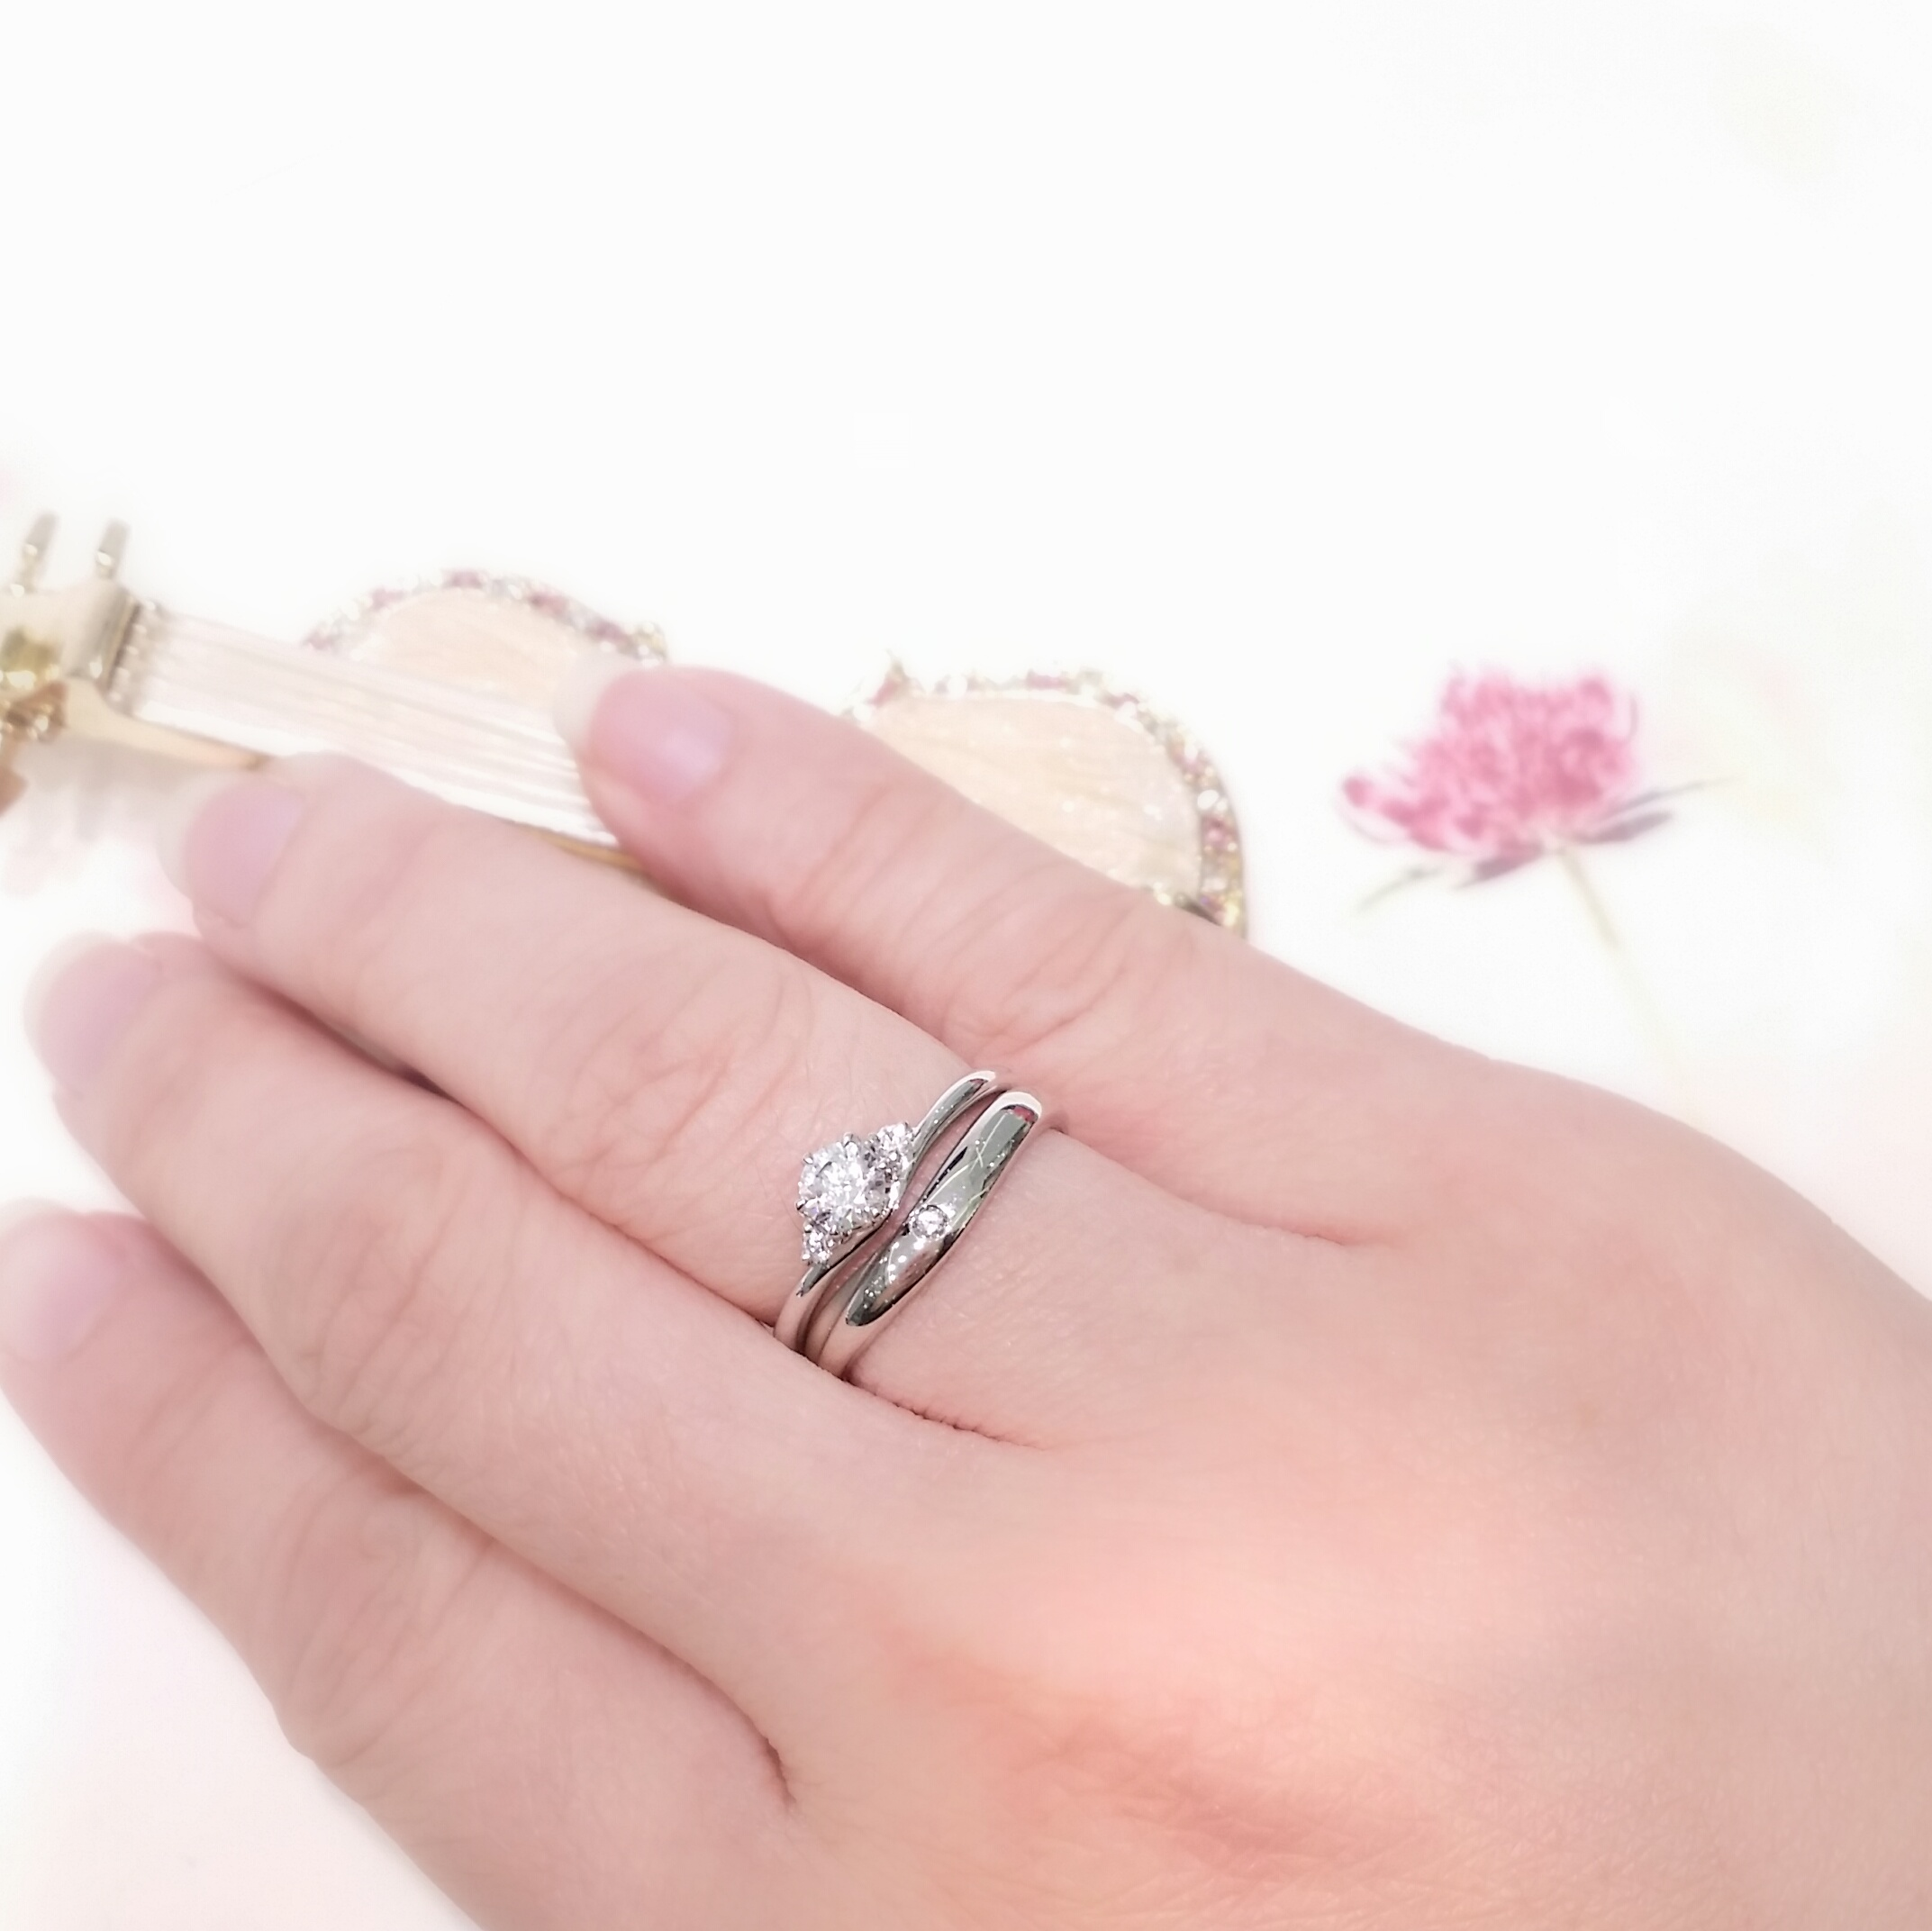 tail buy by made rings engagement marynolan a anime erza custom skarlet wedding crafted ring fairy hand